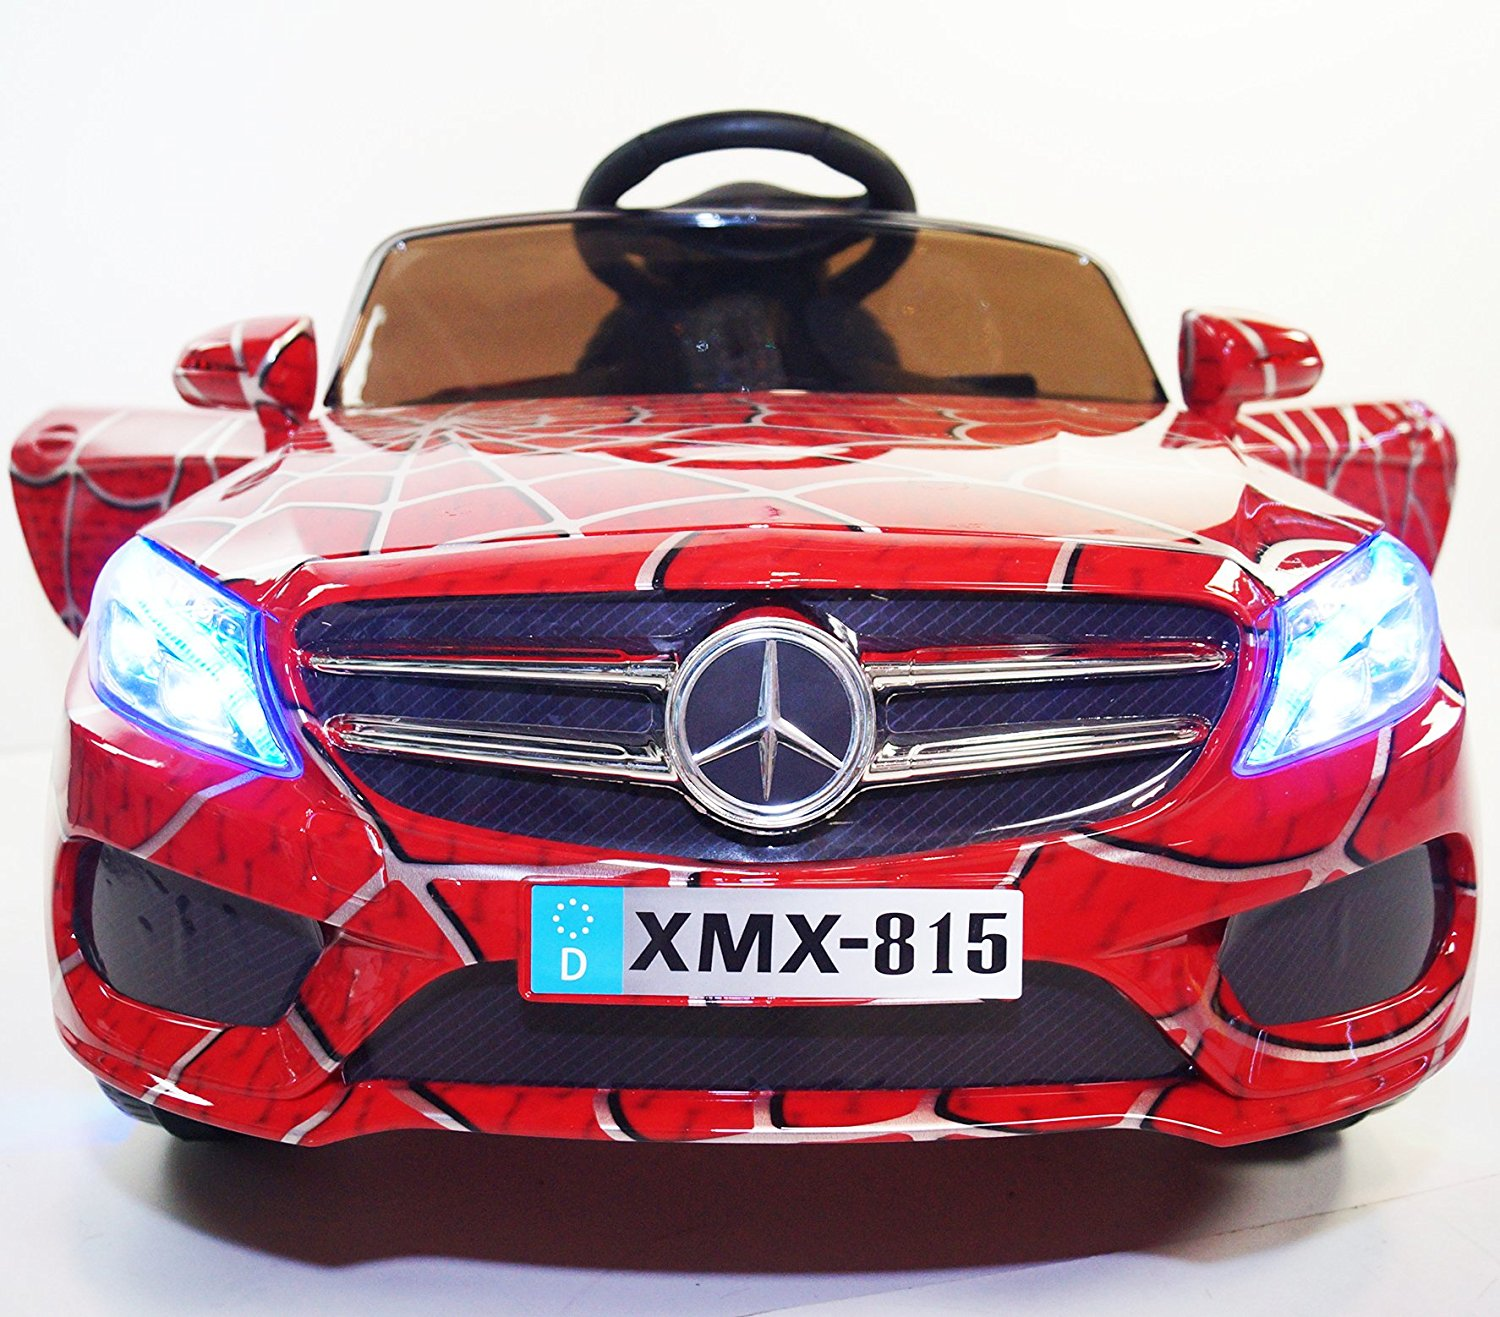 Ride on car MERCEDES licensed. Spiderman car. Car on electric battery, total 12V. Two Electric motor. 2 speeds. MP3. With remote control. R/C. Battery operated. For kids from 2 to 5 years.